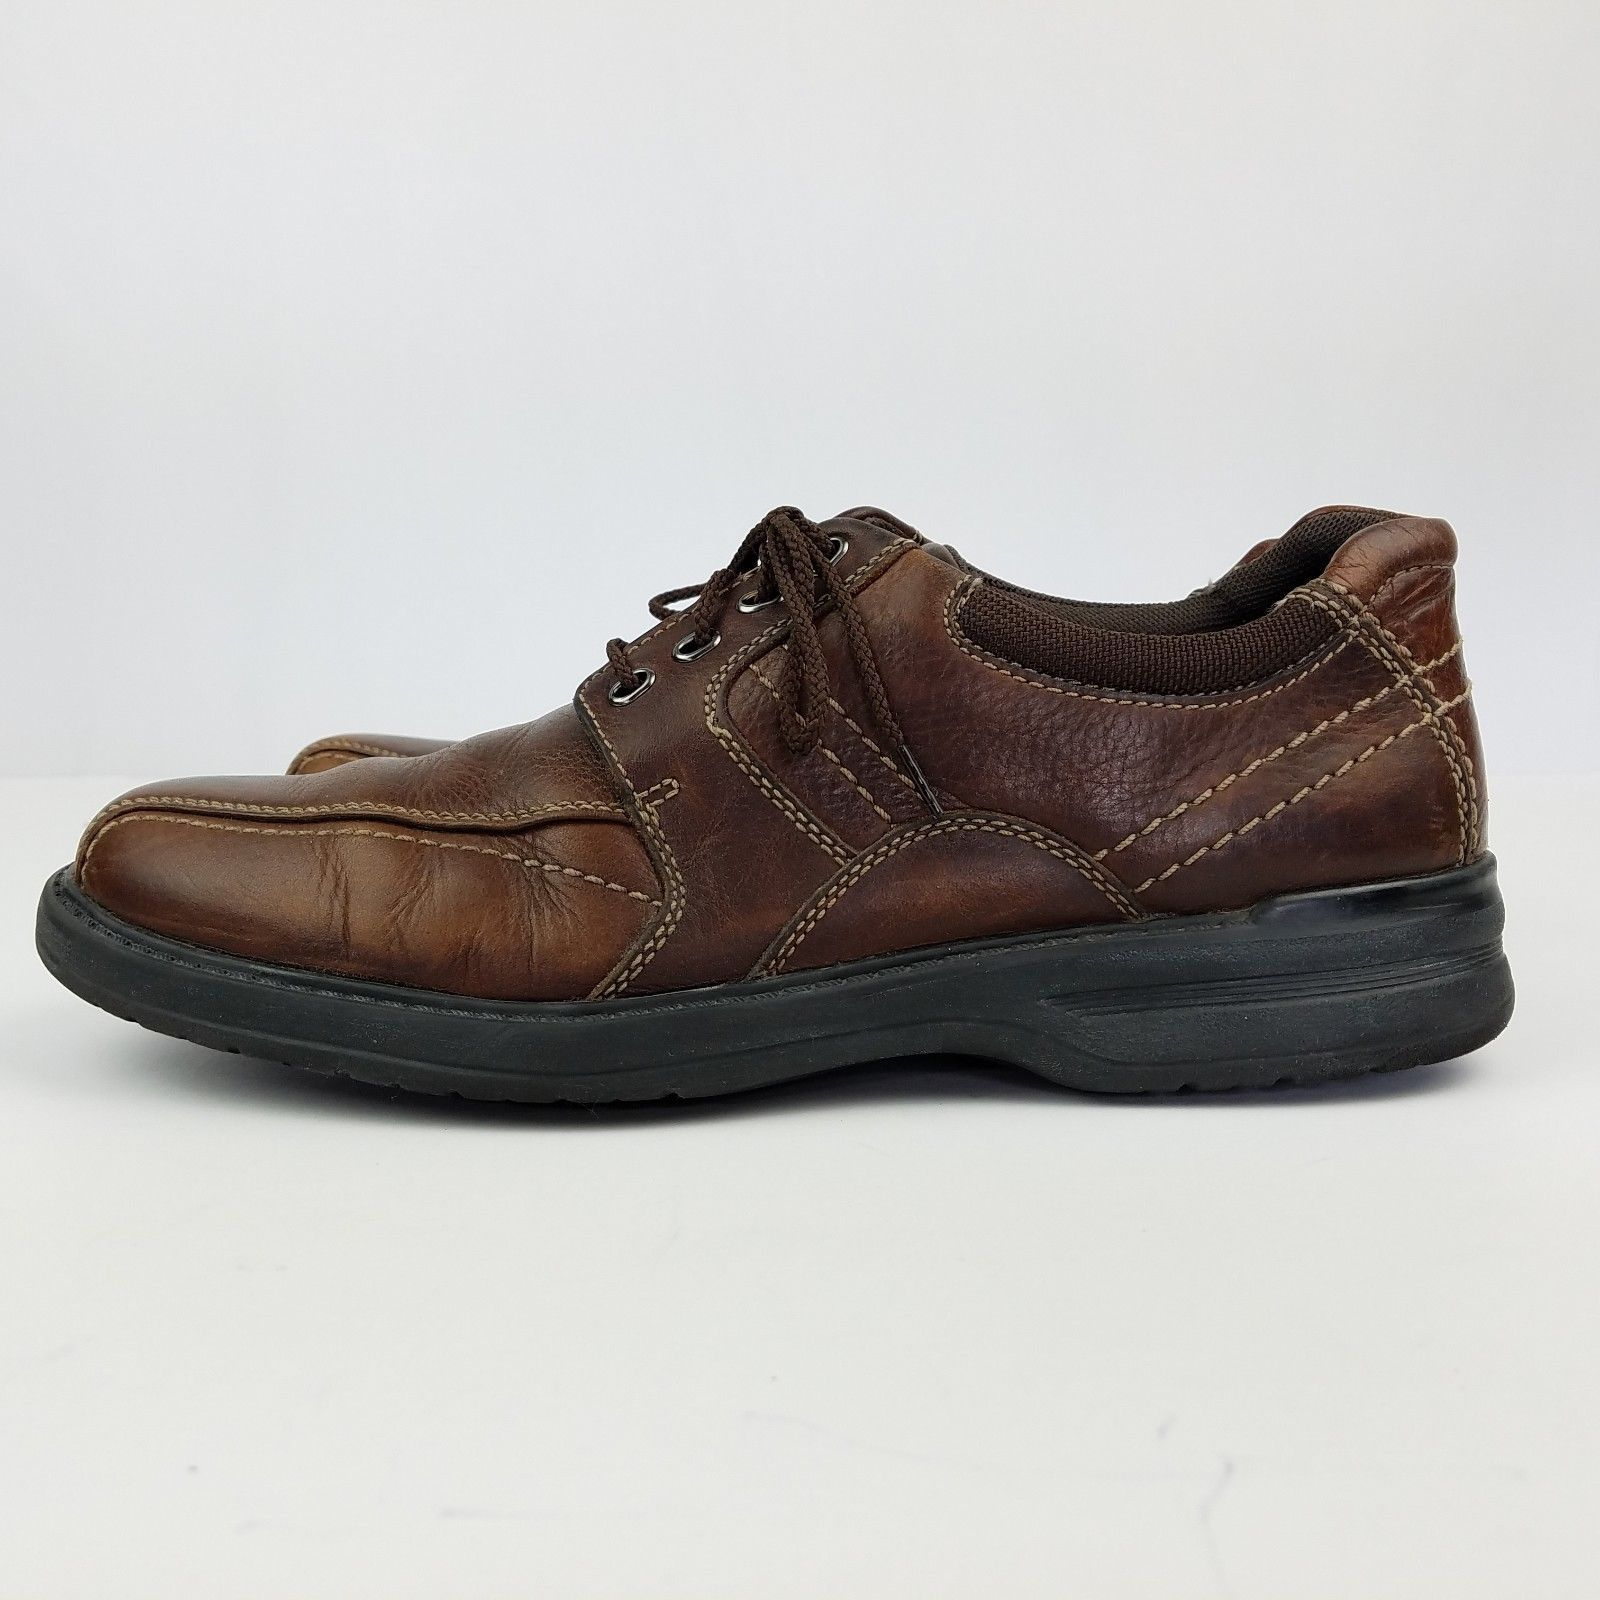 Clarks Sherwin Sz 10.5 M Mens Brown Leather Casual Shoe